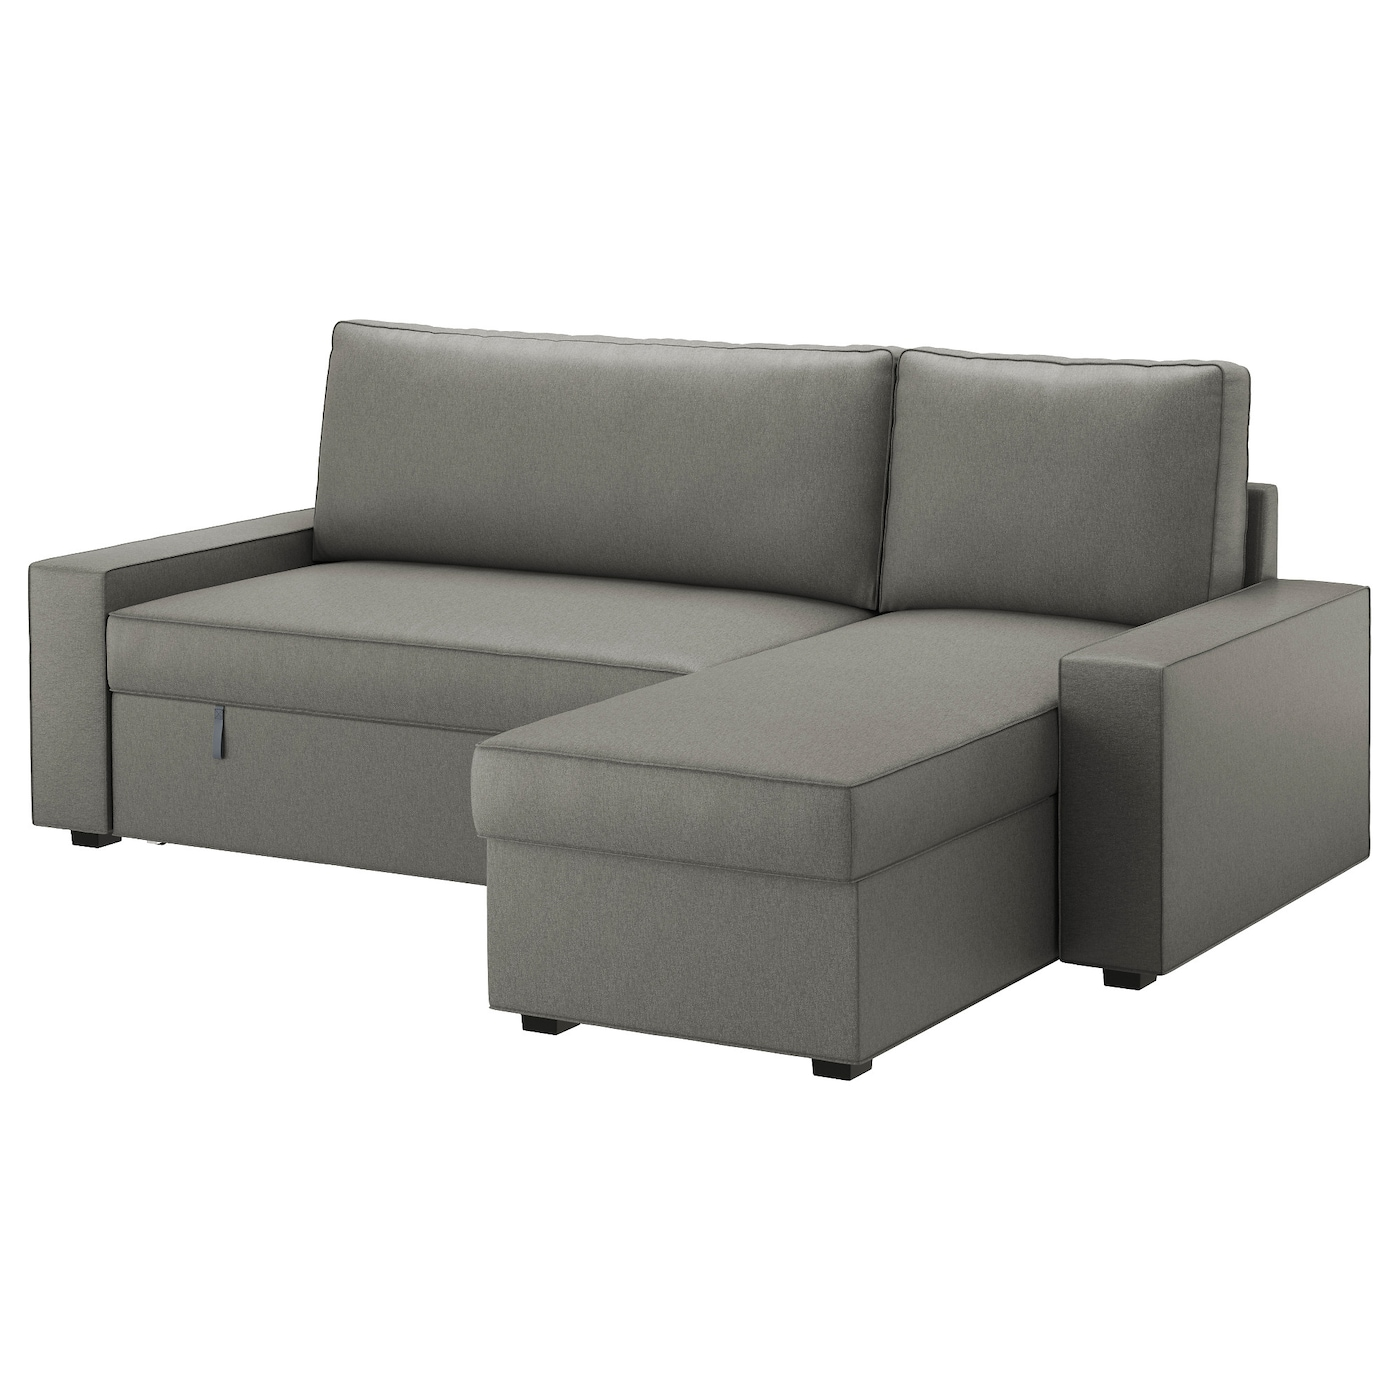 Vilasund sofa bed with chaise longue borred grey green ikea for Sofas con chaise longue